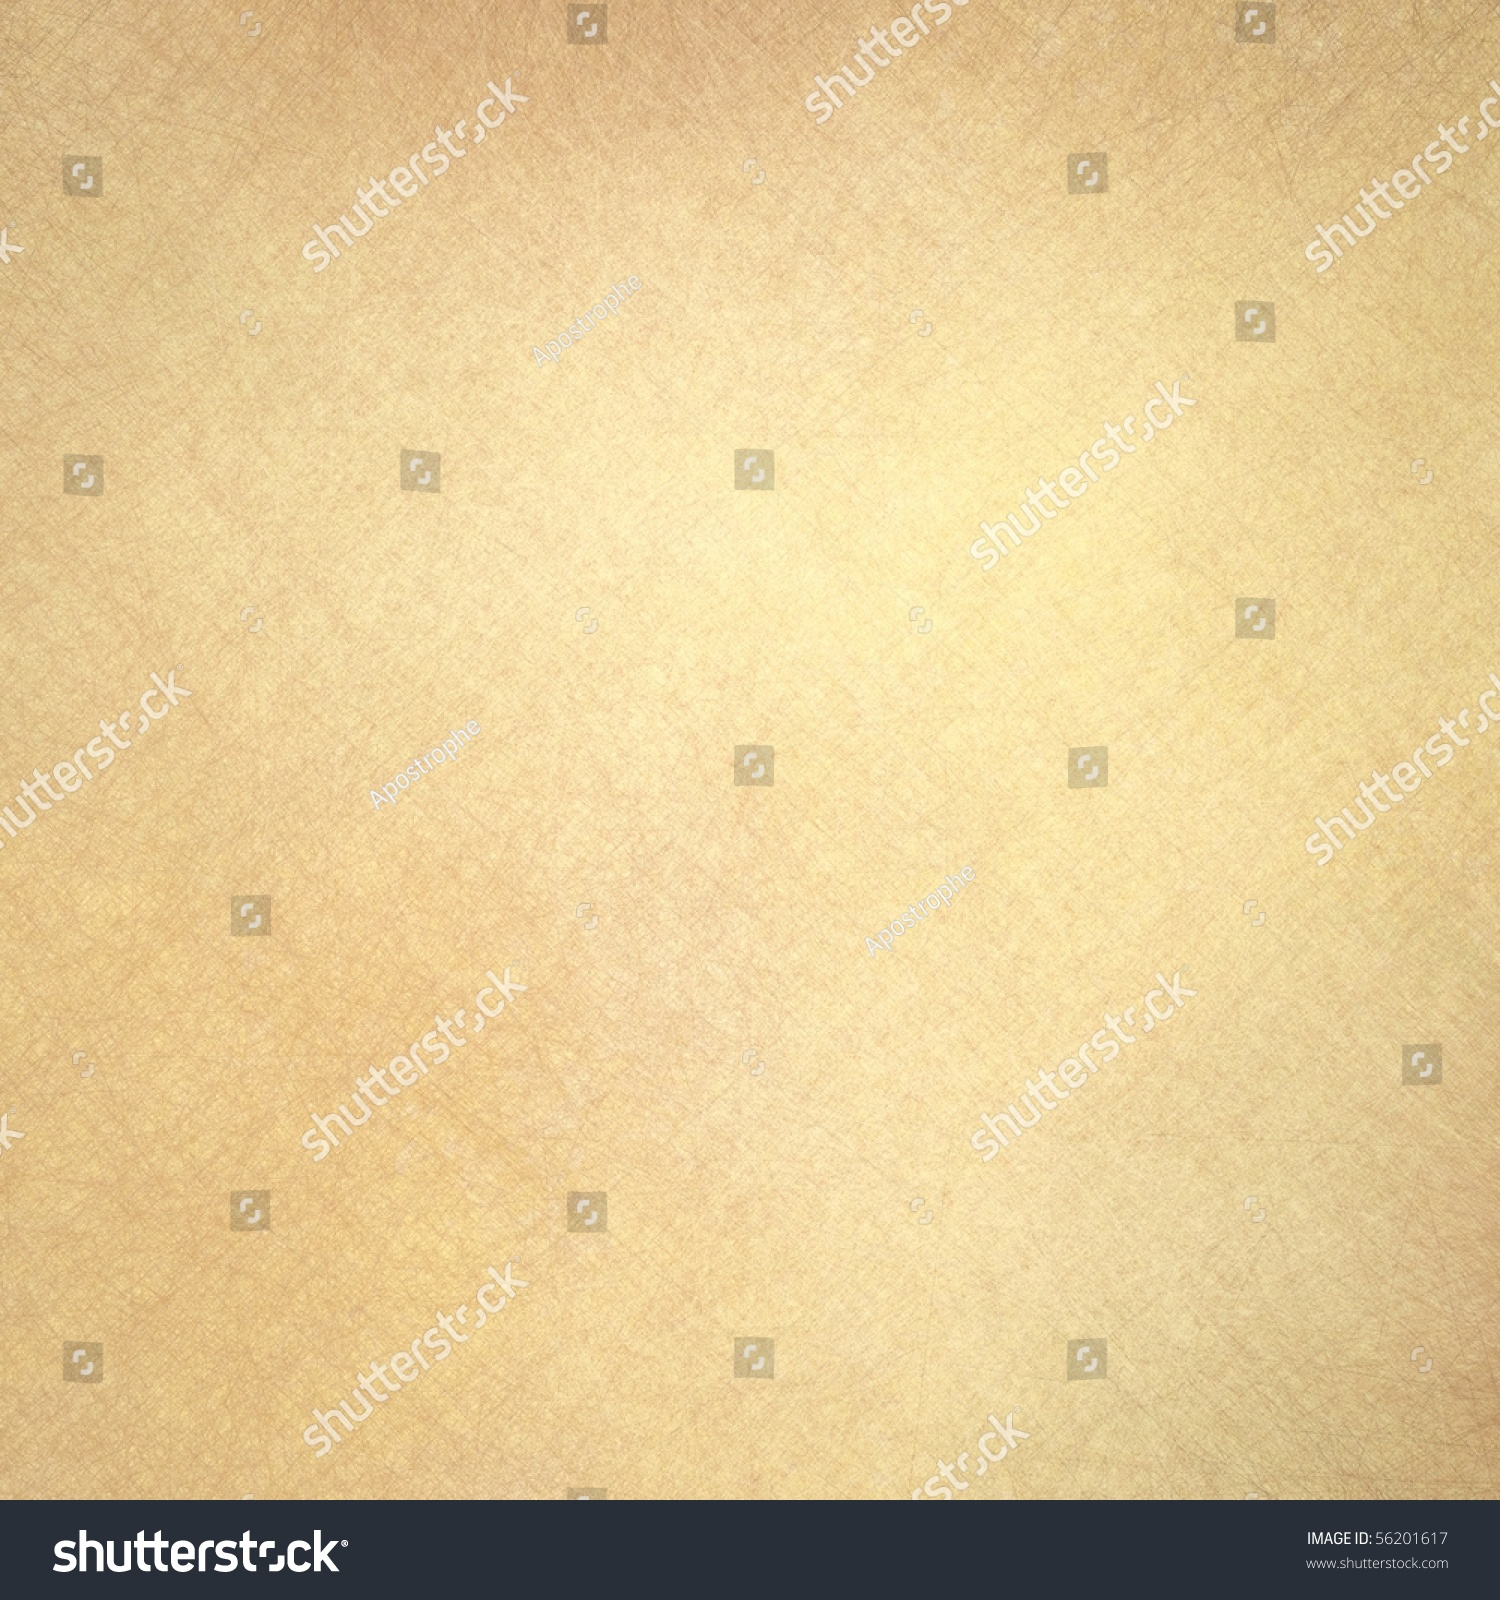 Website soft colors - Abstract Brown Background Or Brown Paper Parchment With Soft Texture Or Tan Cream Colored Wall With